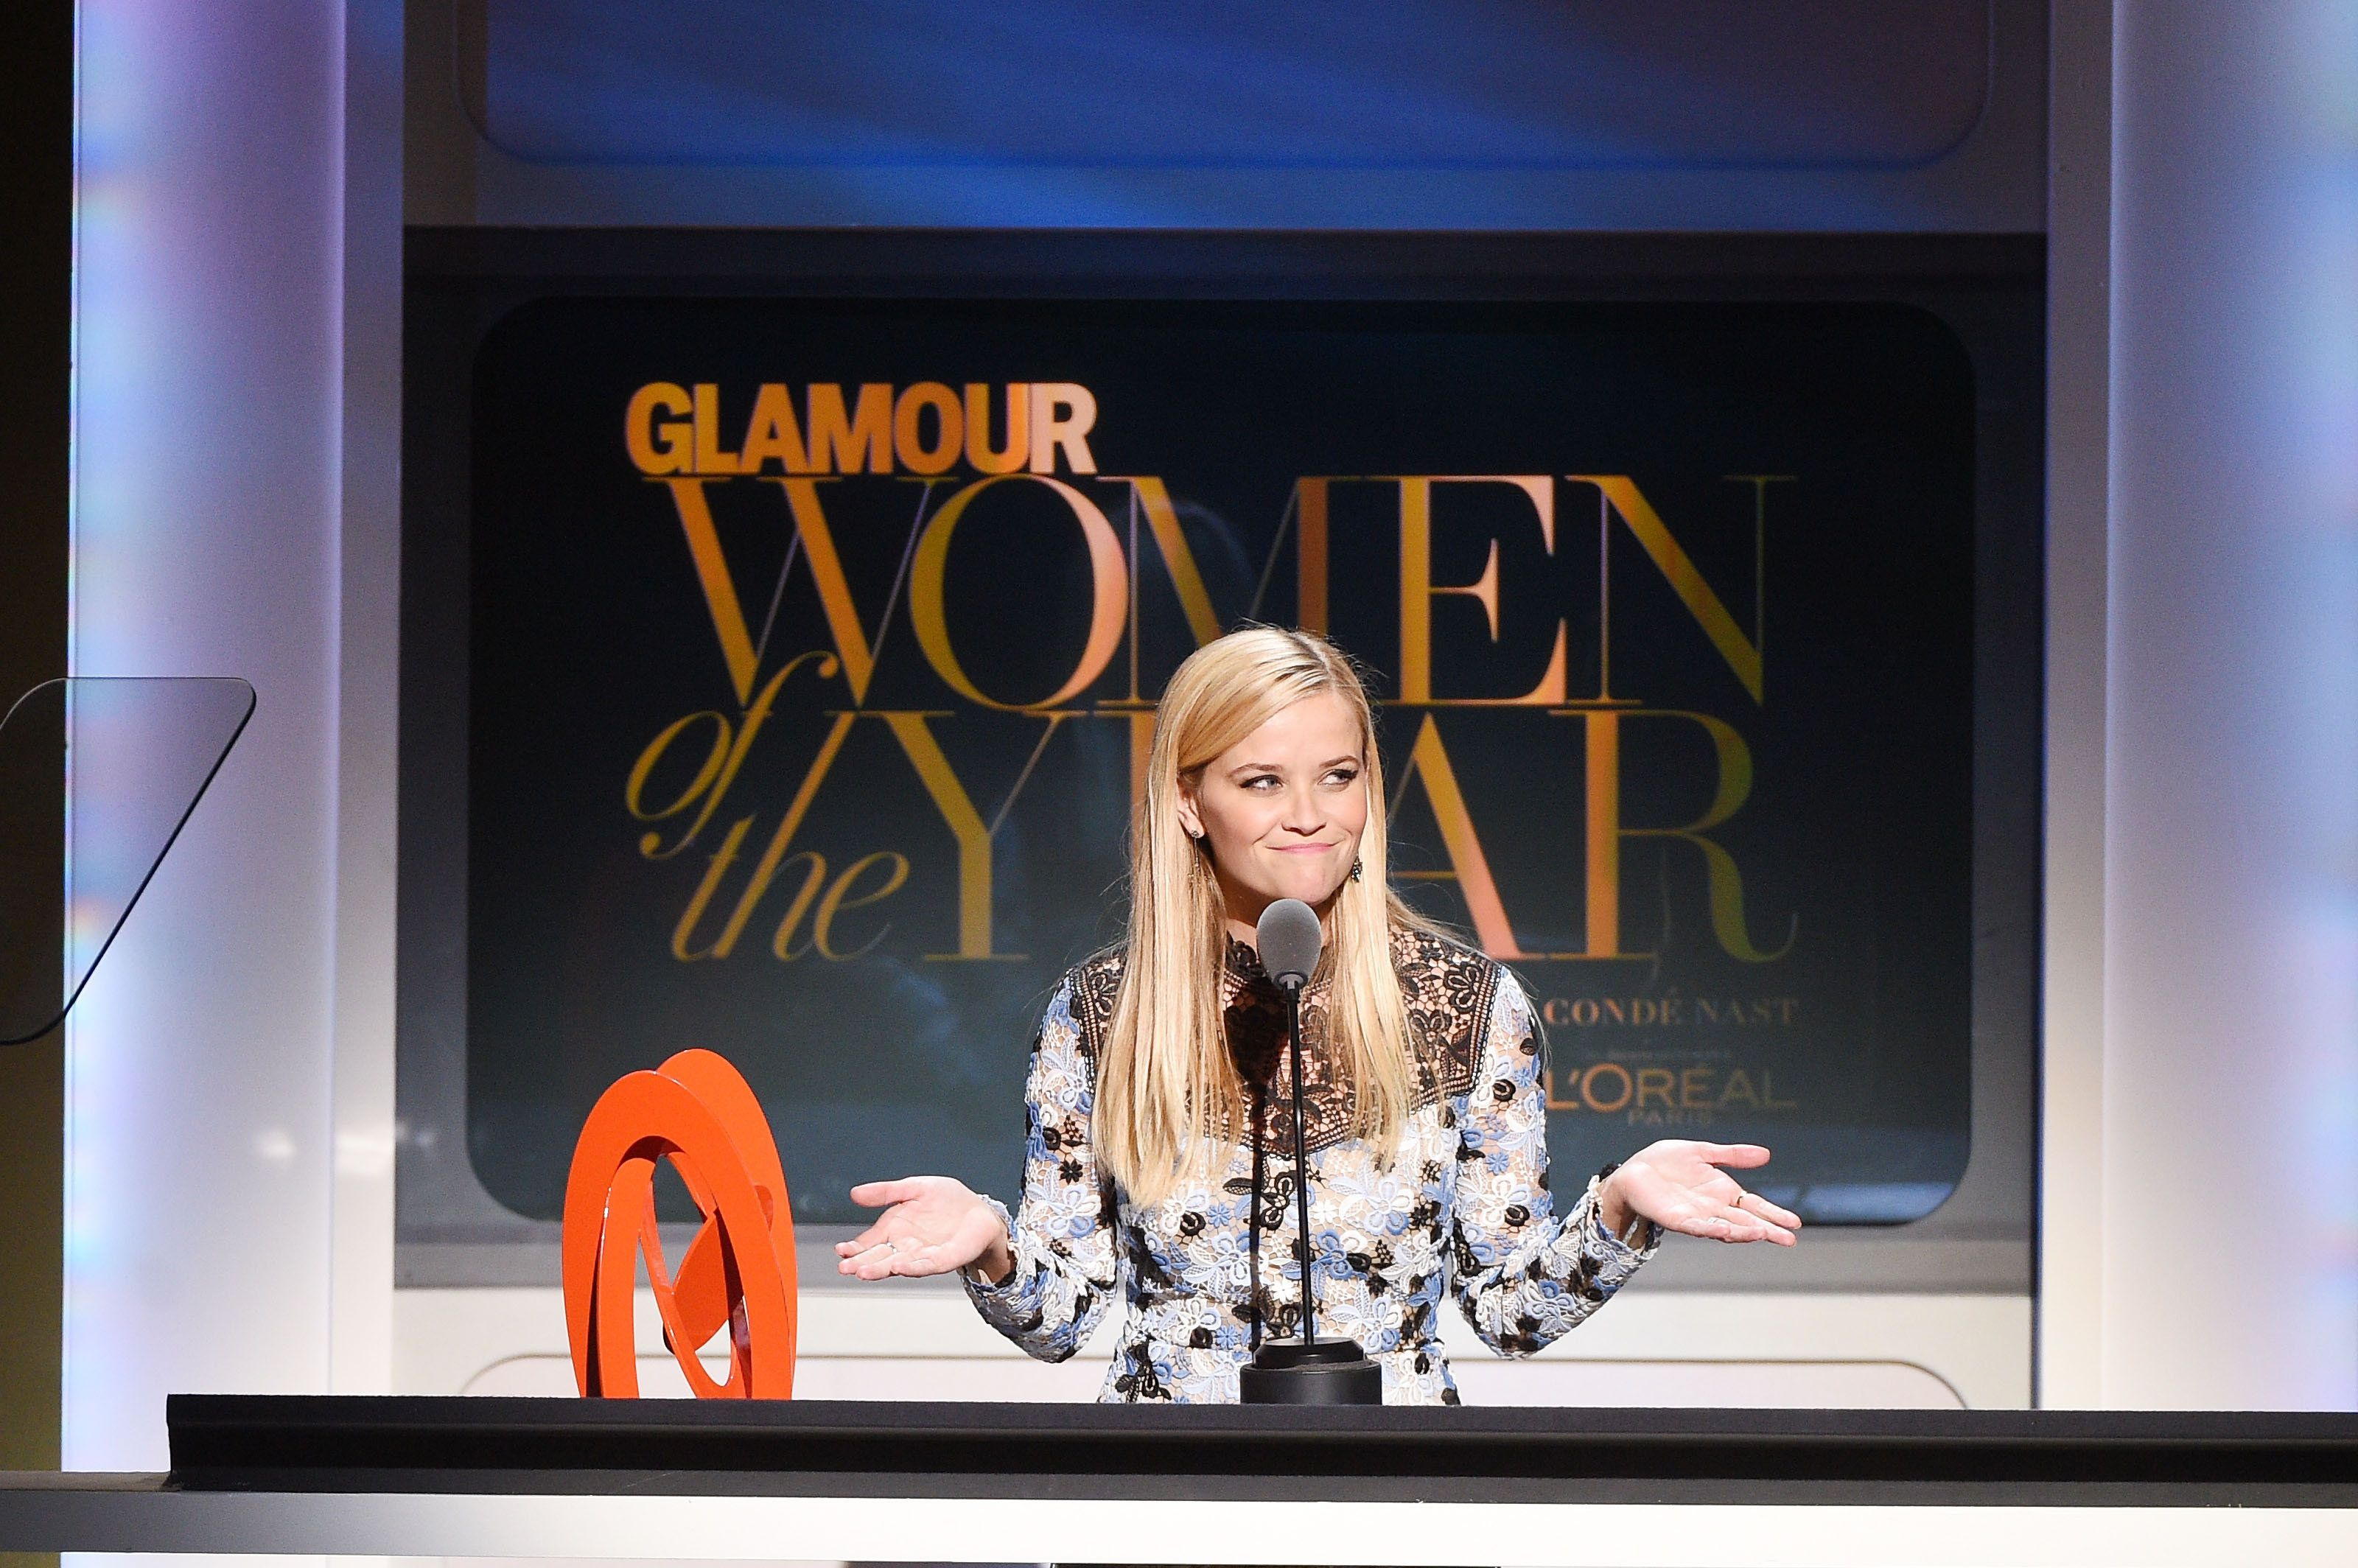 NEW YORK, NY - NOVEMBER 09:  Actress Reese Witherspoon speaks onstage at the 2015 Glamour Women of the Year Awards on November 9, 2015 in New York City.  (Photo by Larry Busacca/Getty Images for Glamour)